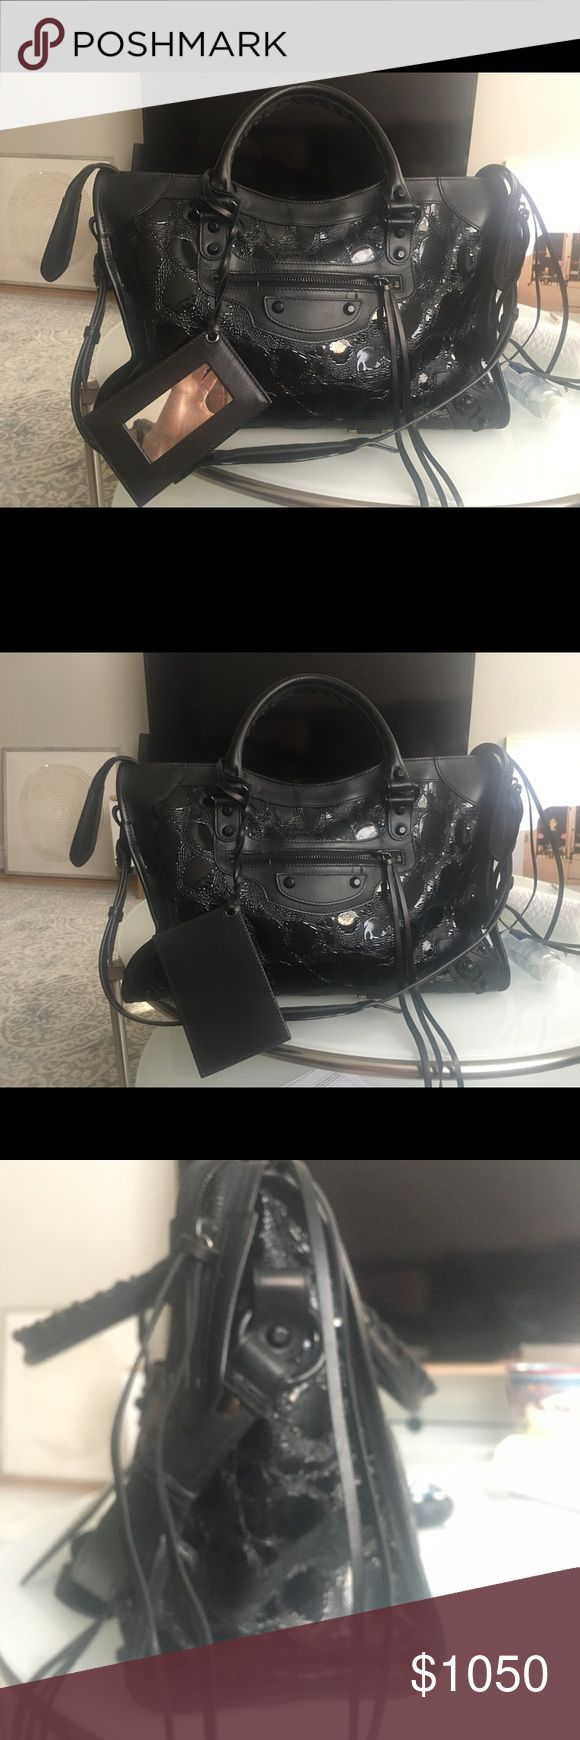 Balenciaga Classic City Satchel Embossed calfskin leather, double whipstiched rolled handles, solid leather trim and accents, zip pocket at front, buckle and metal stud accents with hanging leather framed mirror Balenciaga Bags Satchels